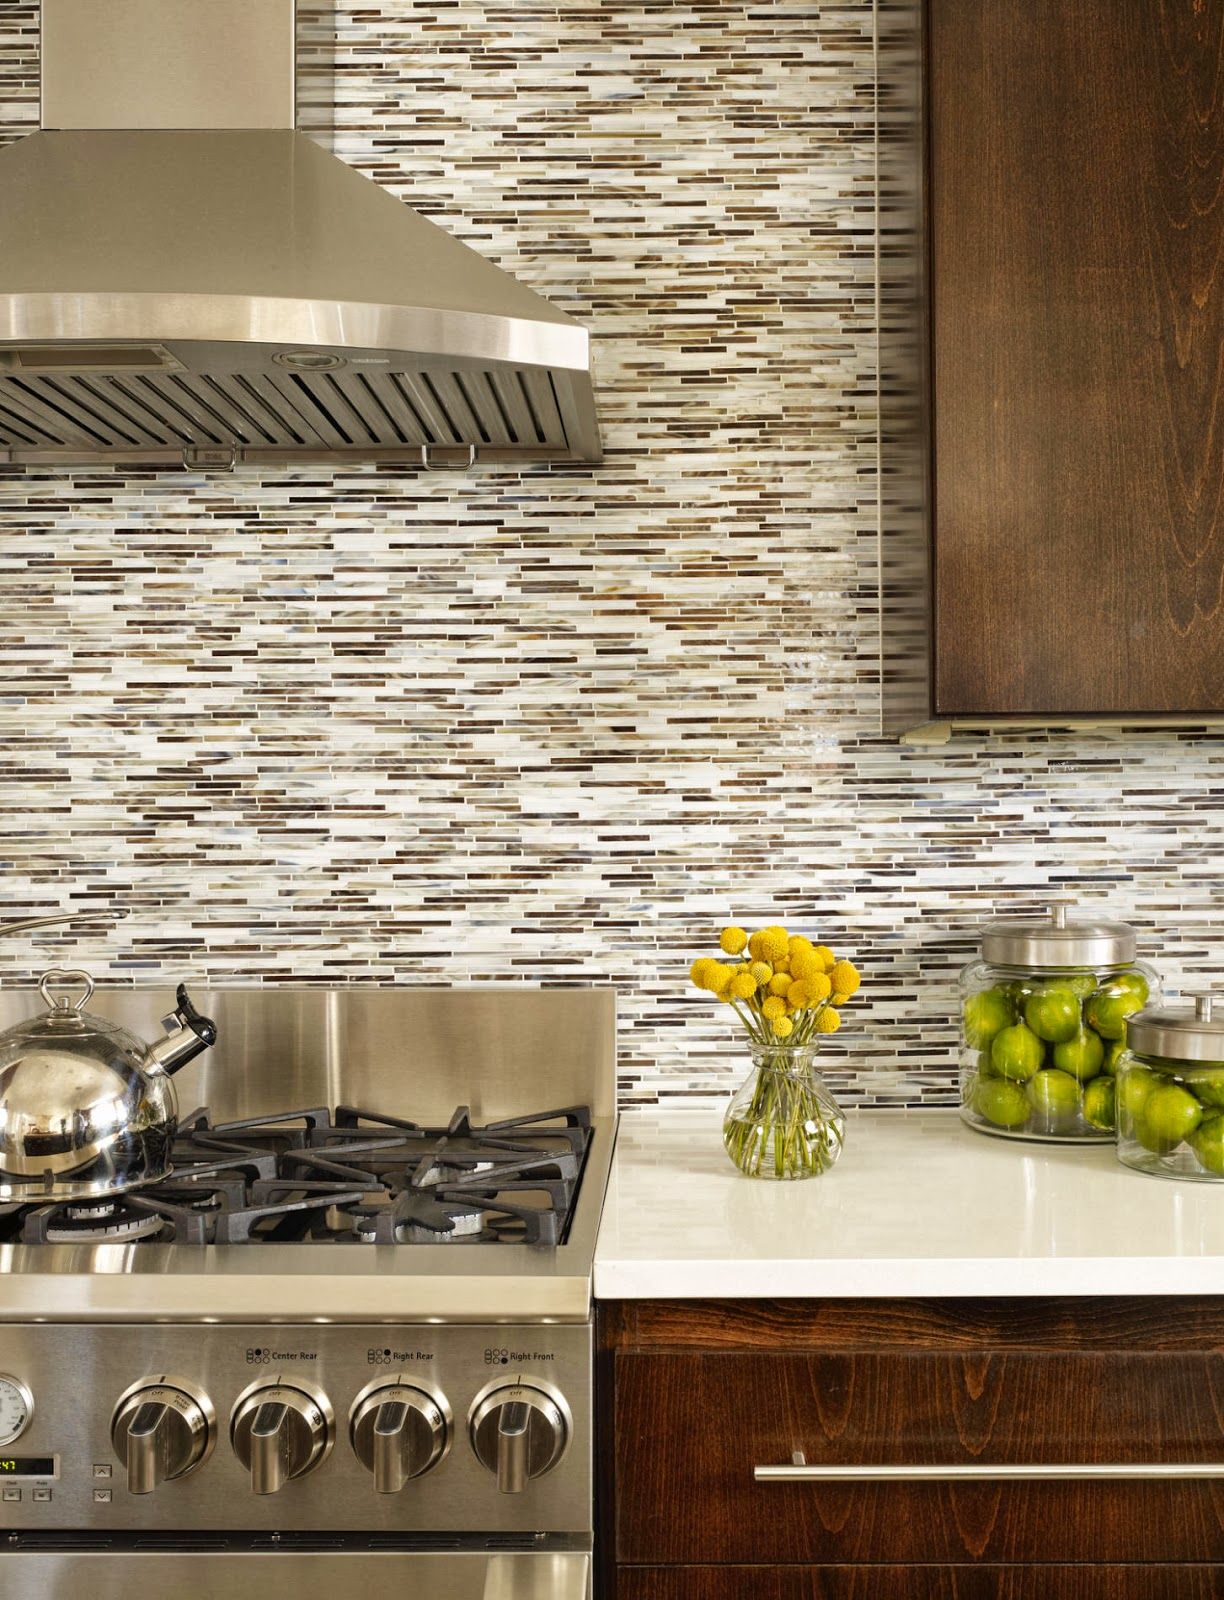 kitchen concept wall tiles    1224 x 1600